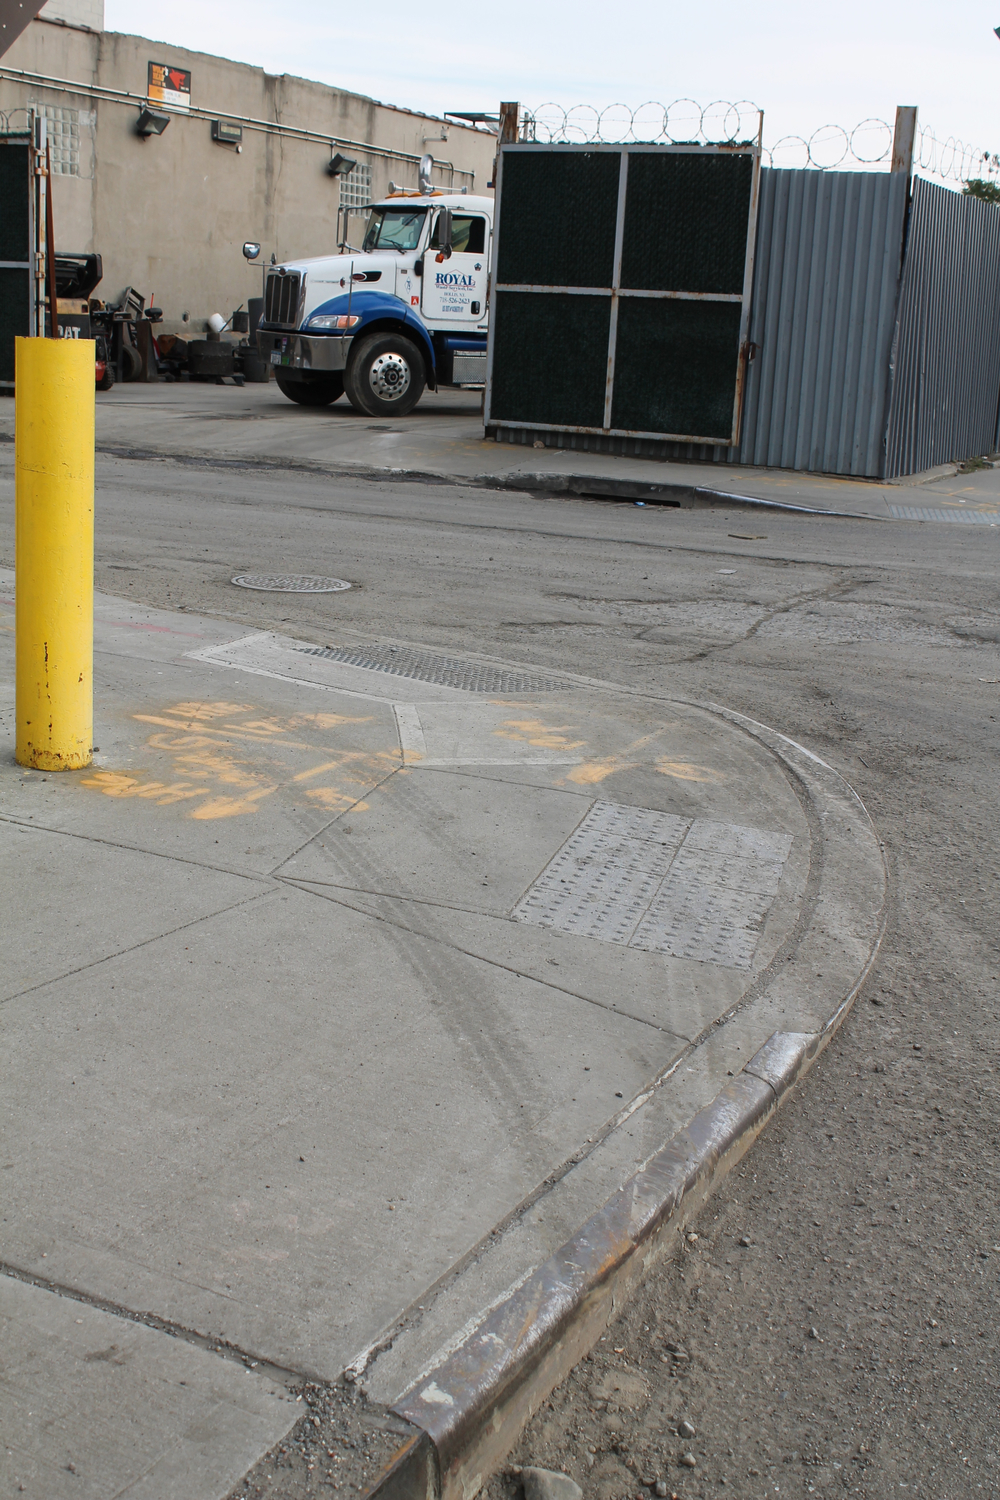 The tire marks left by commercial truck drivers, who are only able to make wide right turns from Douglas Avenue onto 170th Street by jumping the wheels of their large and heavy commercial trucks onto the sidewalks of the narrow streets in Jamaica.  Pictured here, the sidewalk at the northeast corner of Douglas Avenue and 170th Street.  Source :  Louis Flores